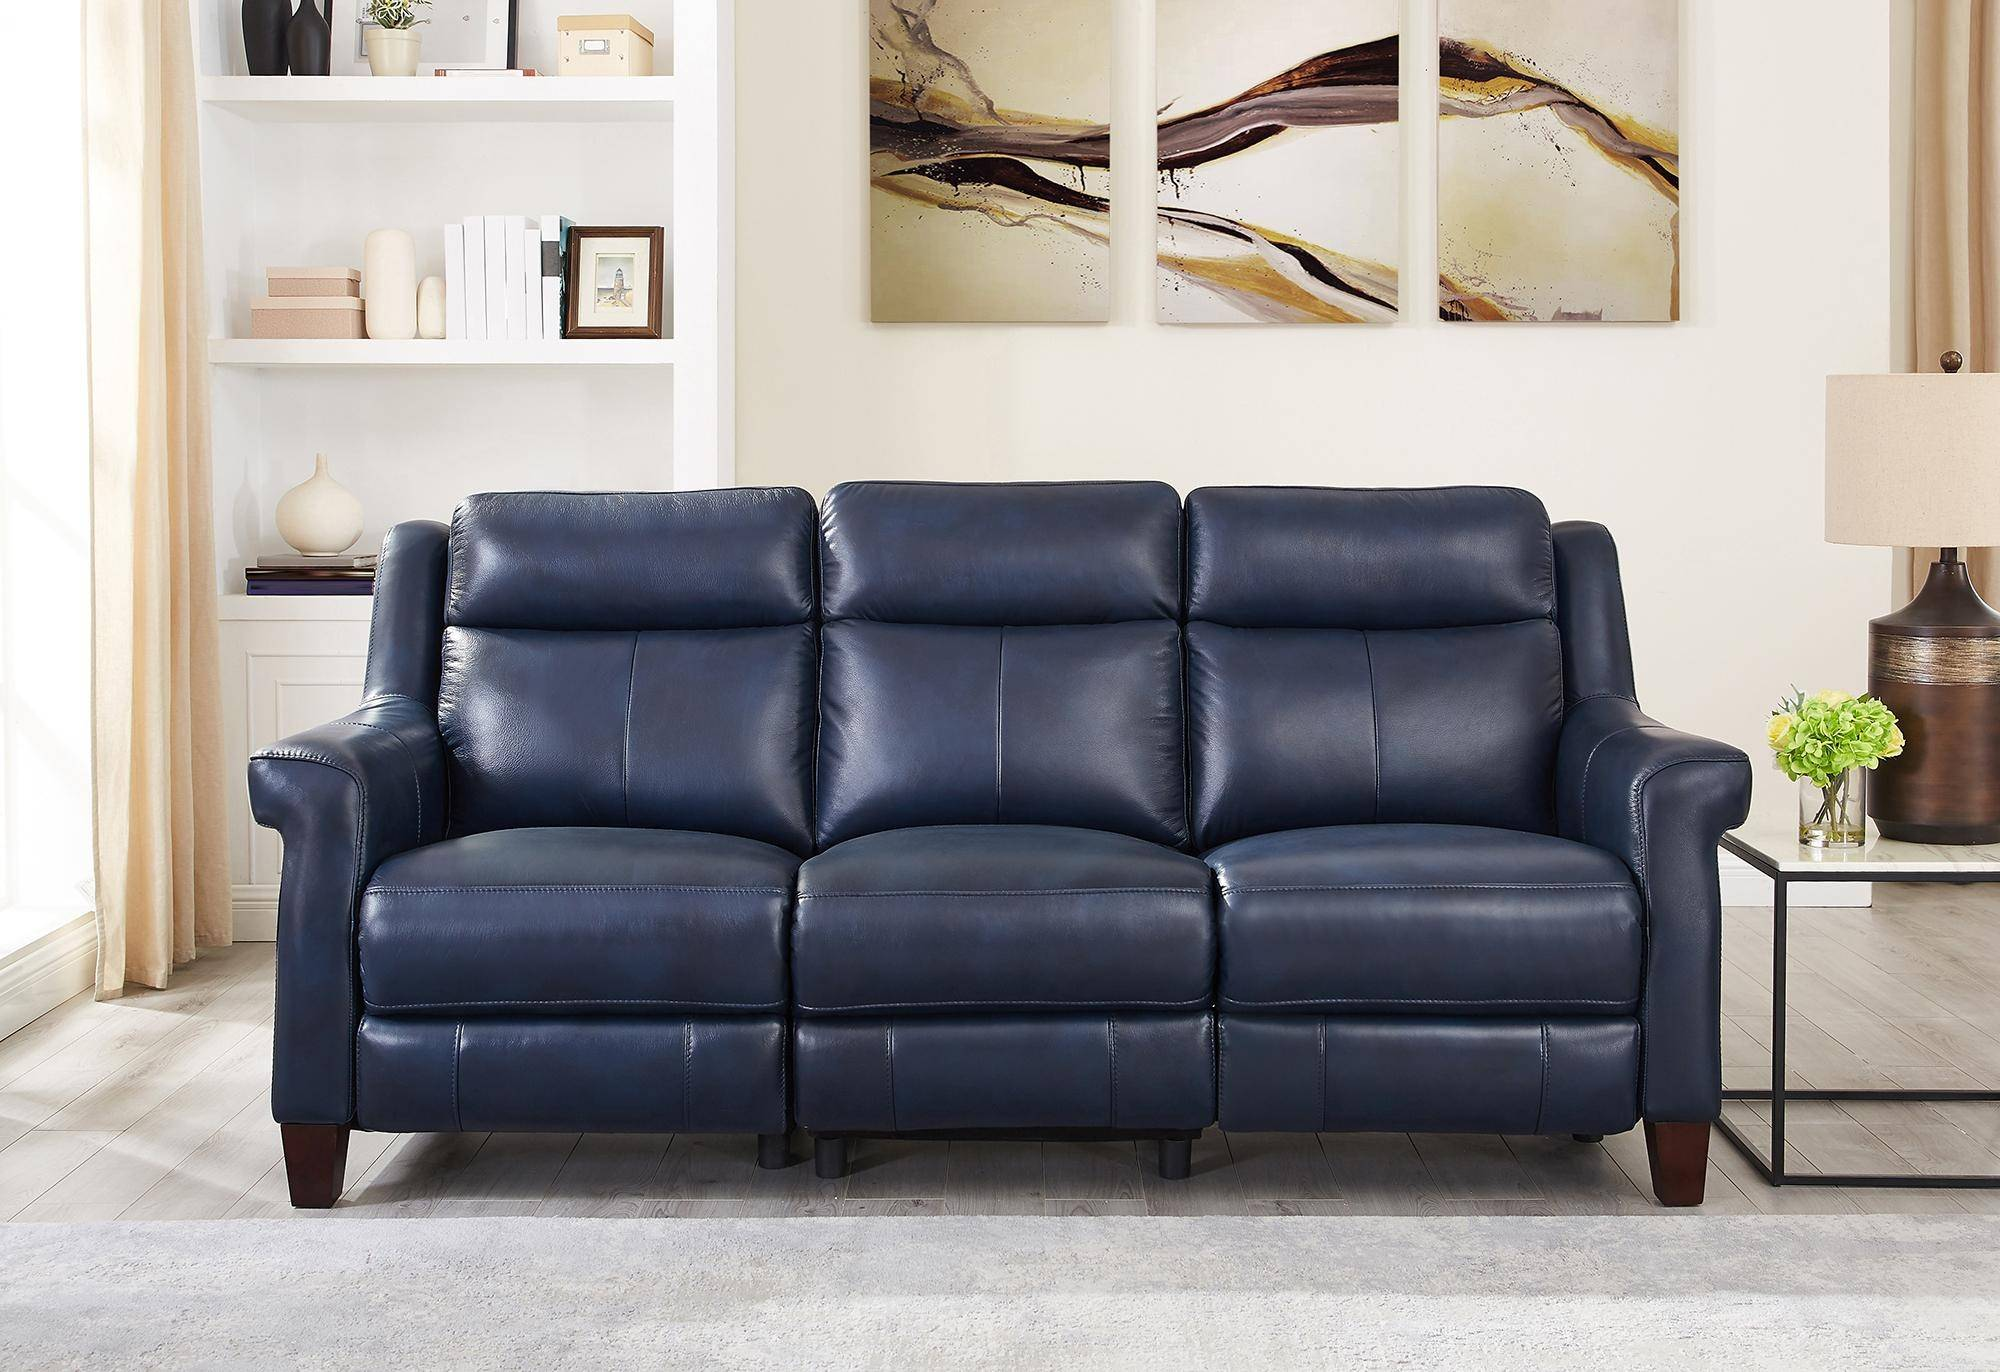 Awesome Chatham Blue Genuine Leather Power Reclining Sofa Chair Set Machost Co Dining Chair Design Ideas Machostcouk